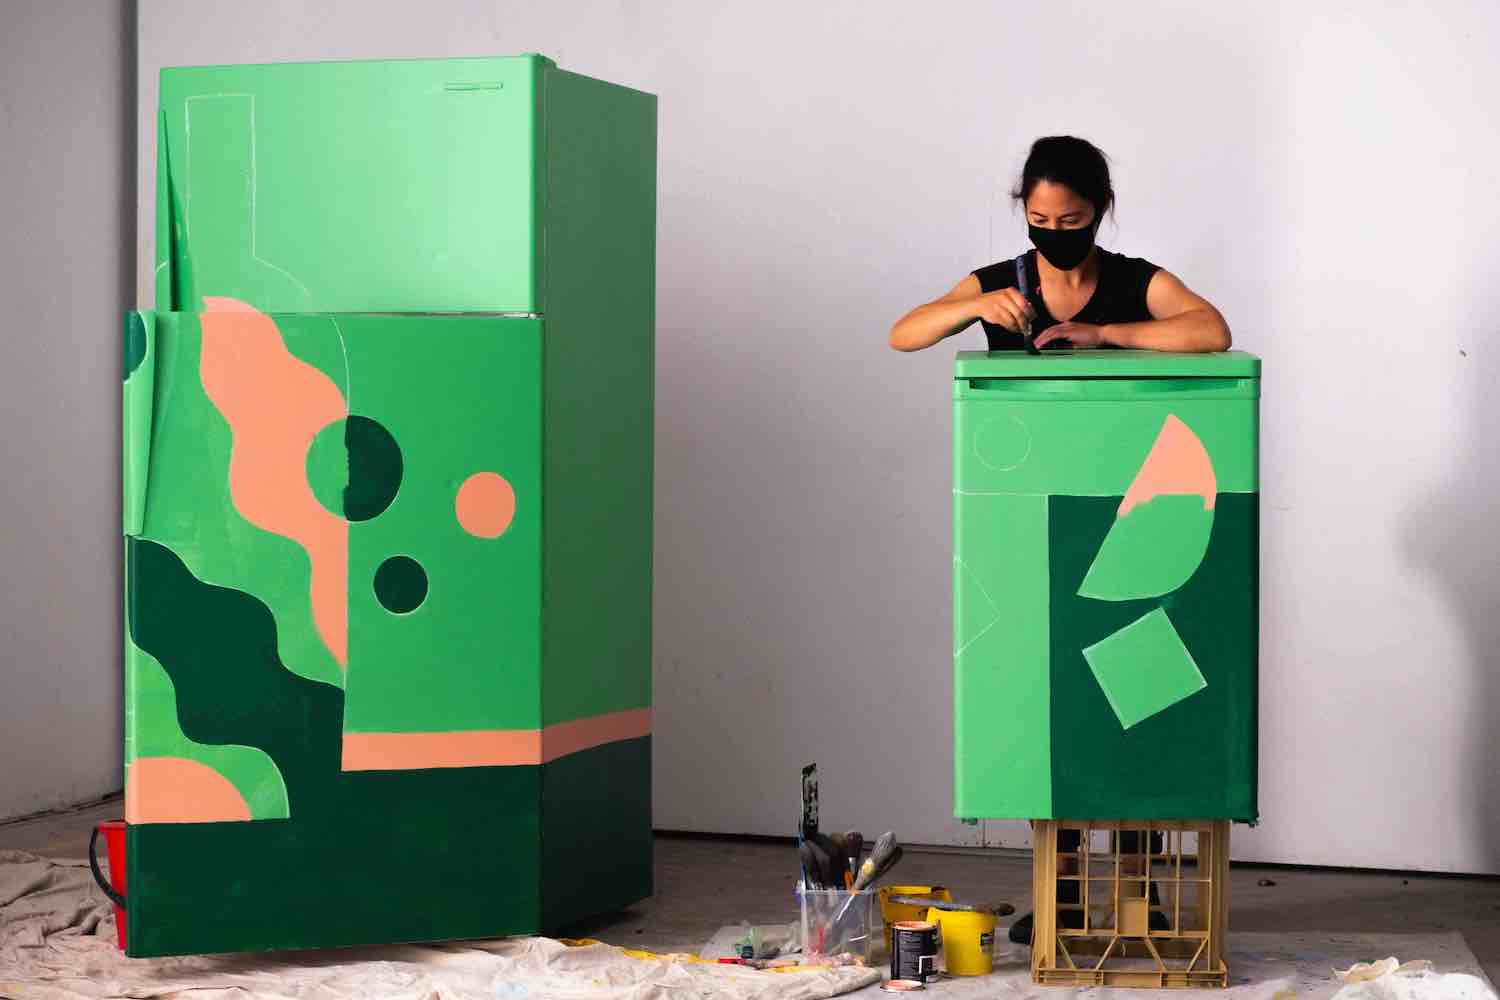 The Bottle-O calls on Aussies to find new homes for abandoned fridges in new campaign via Dig